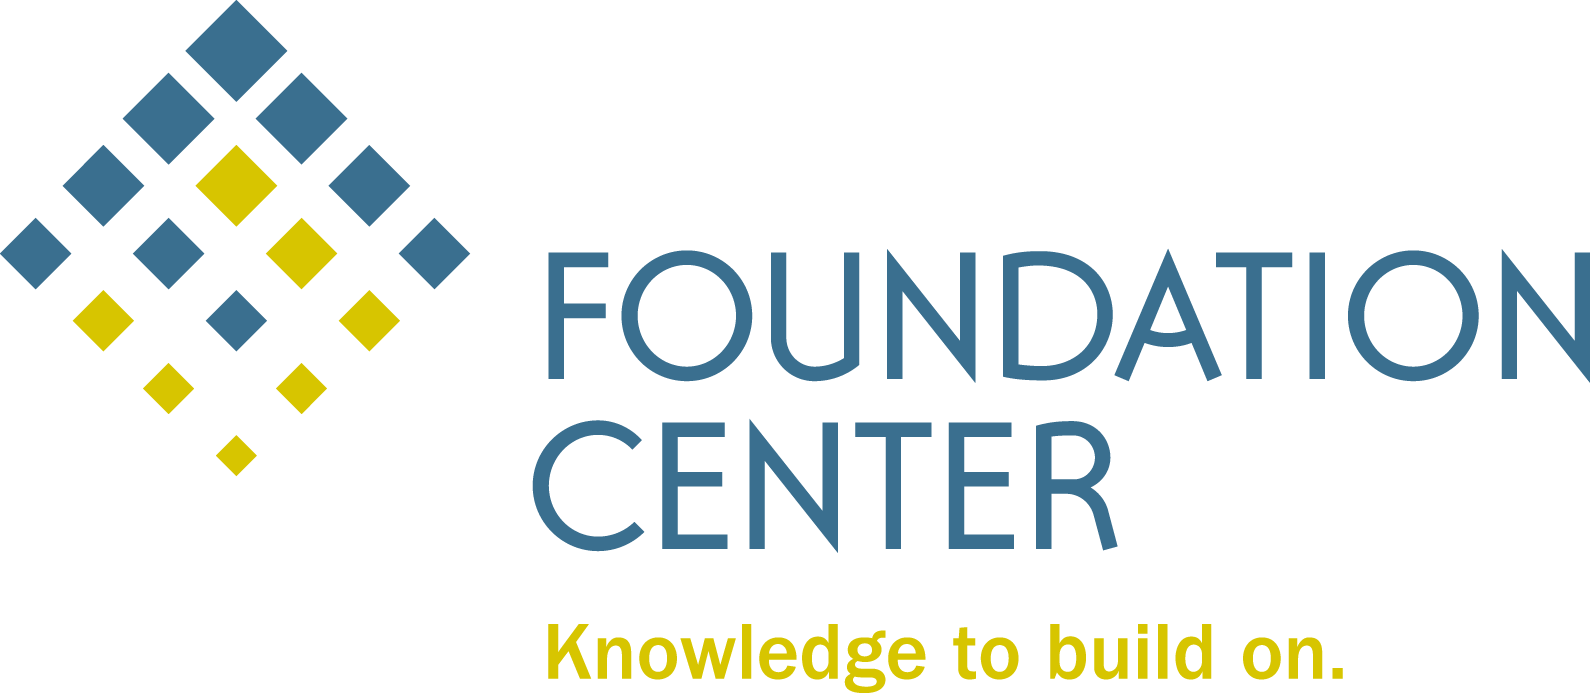 Grant writing services training foundation center